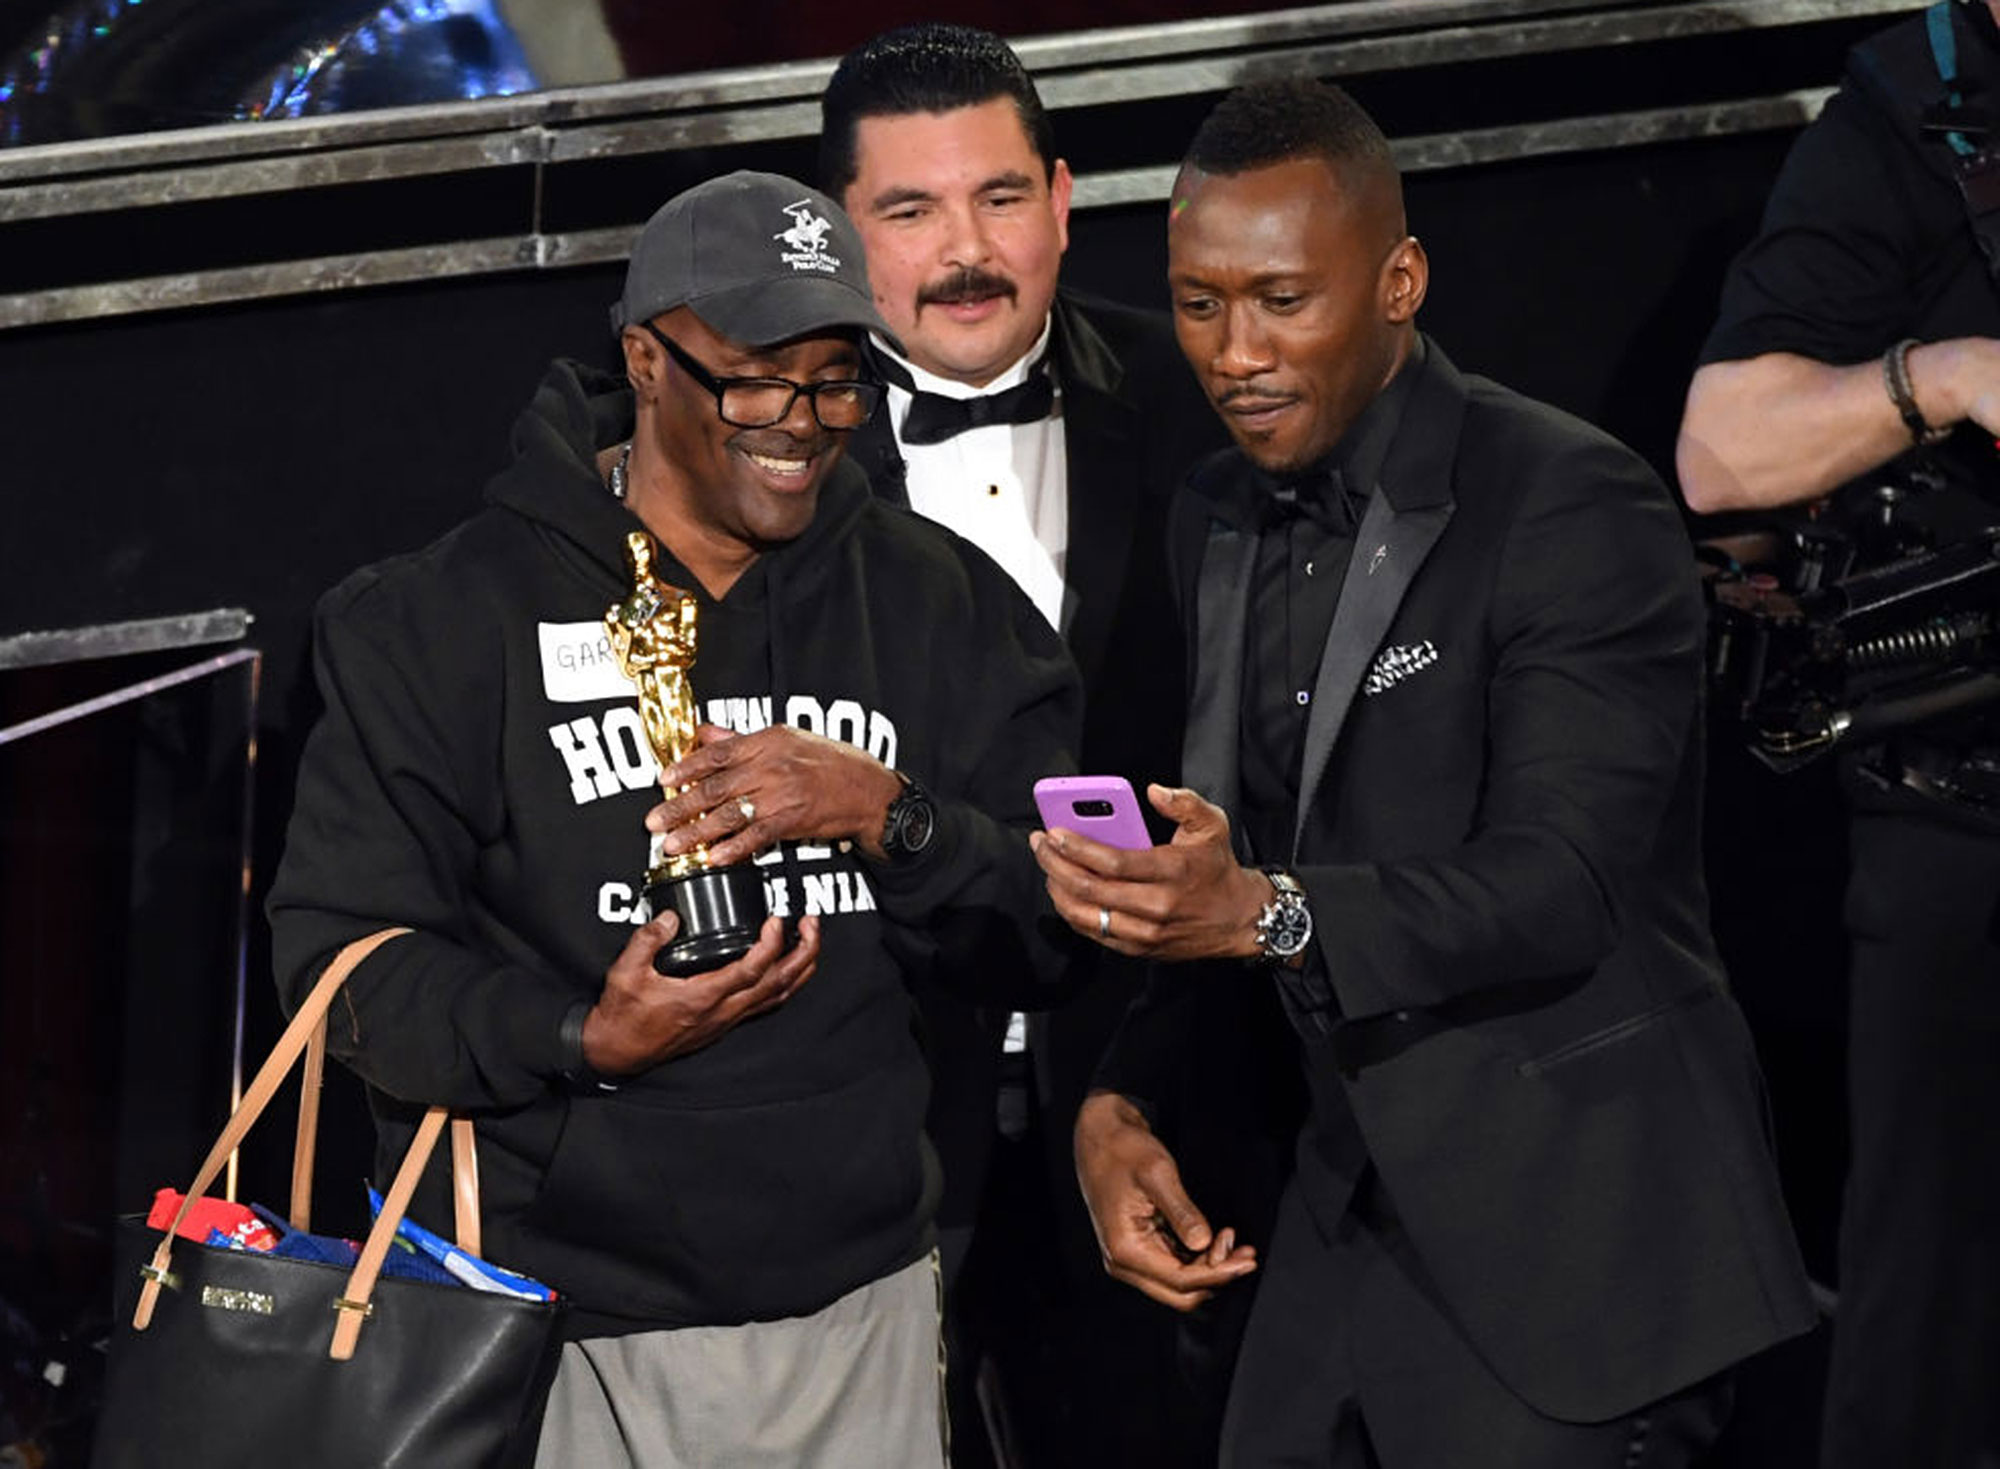 HOLLYWOOD, CA - FEBRUARY 26: Guillermo Rodriguez (C) and actor Mahershala Ali (R) surprises tourists with an entrance to the 89th Annual Academy Awards at Hollywood & Highland Center on February 26, 2017 in Hollywood, California. (Photo by Kevin Winter/Getty Images)